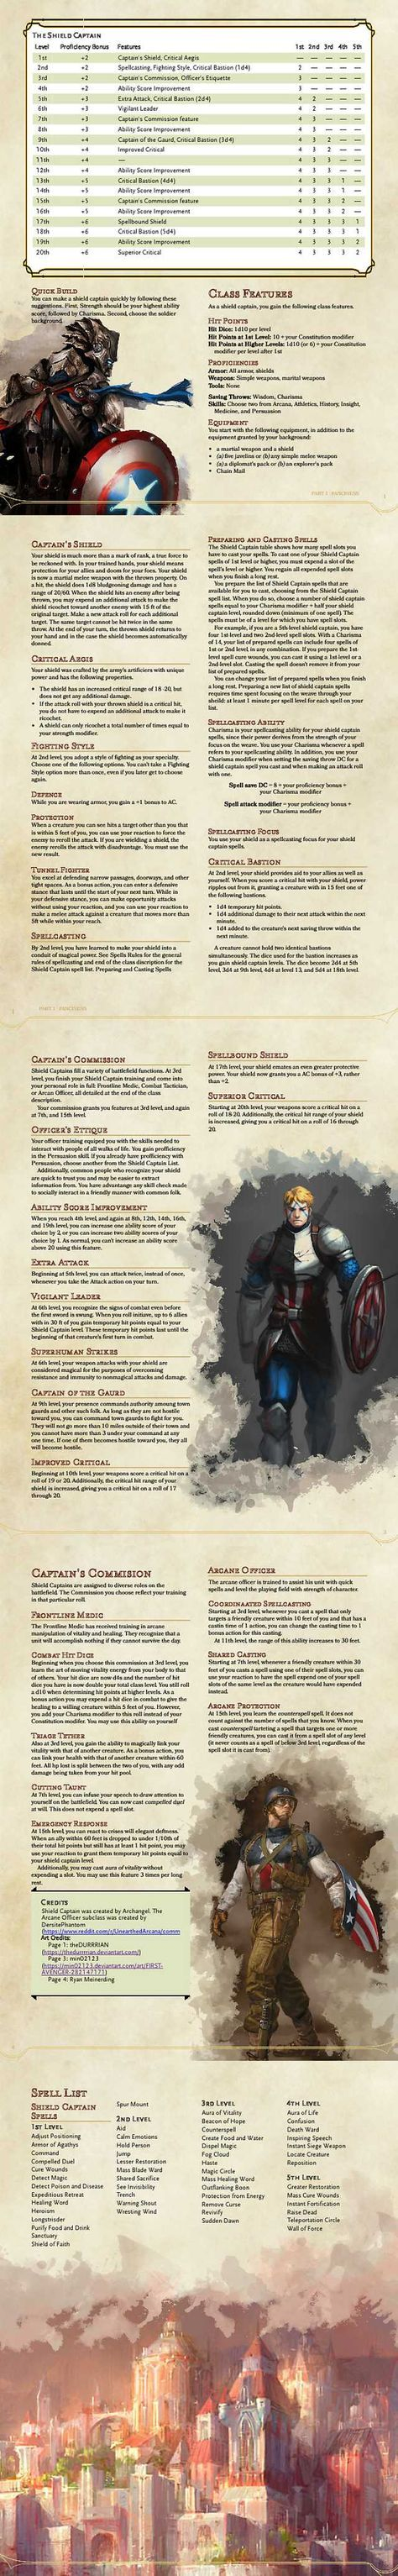 Class] Feedback wanted on Fantasy Captain America Class in 2019